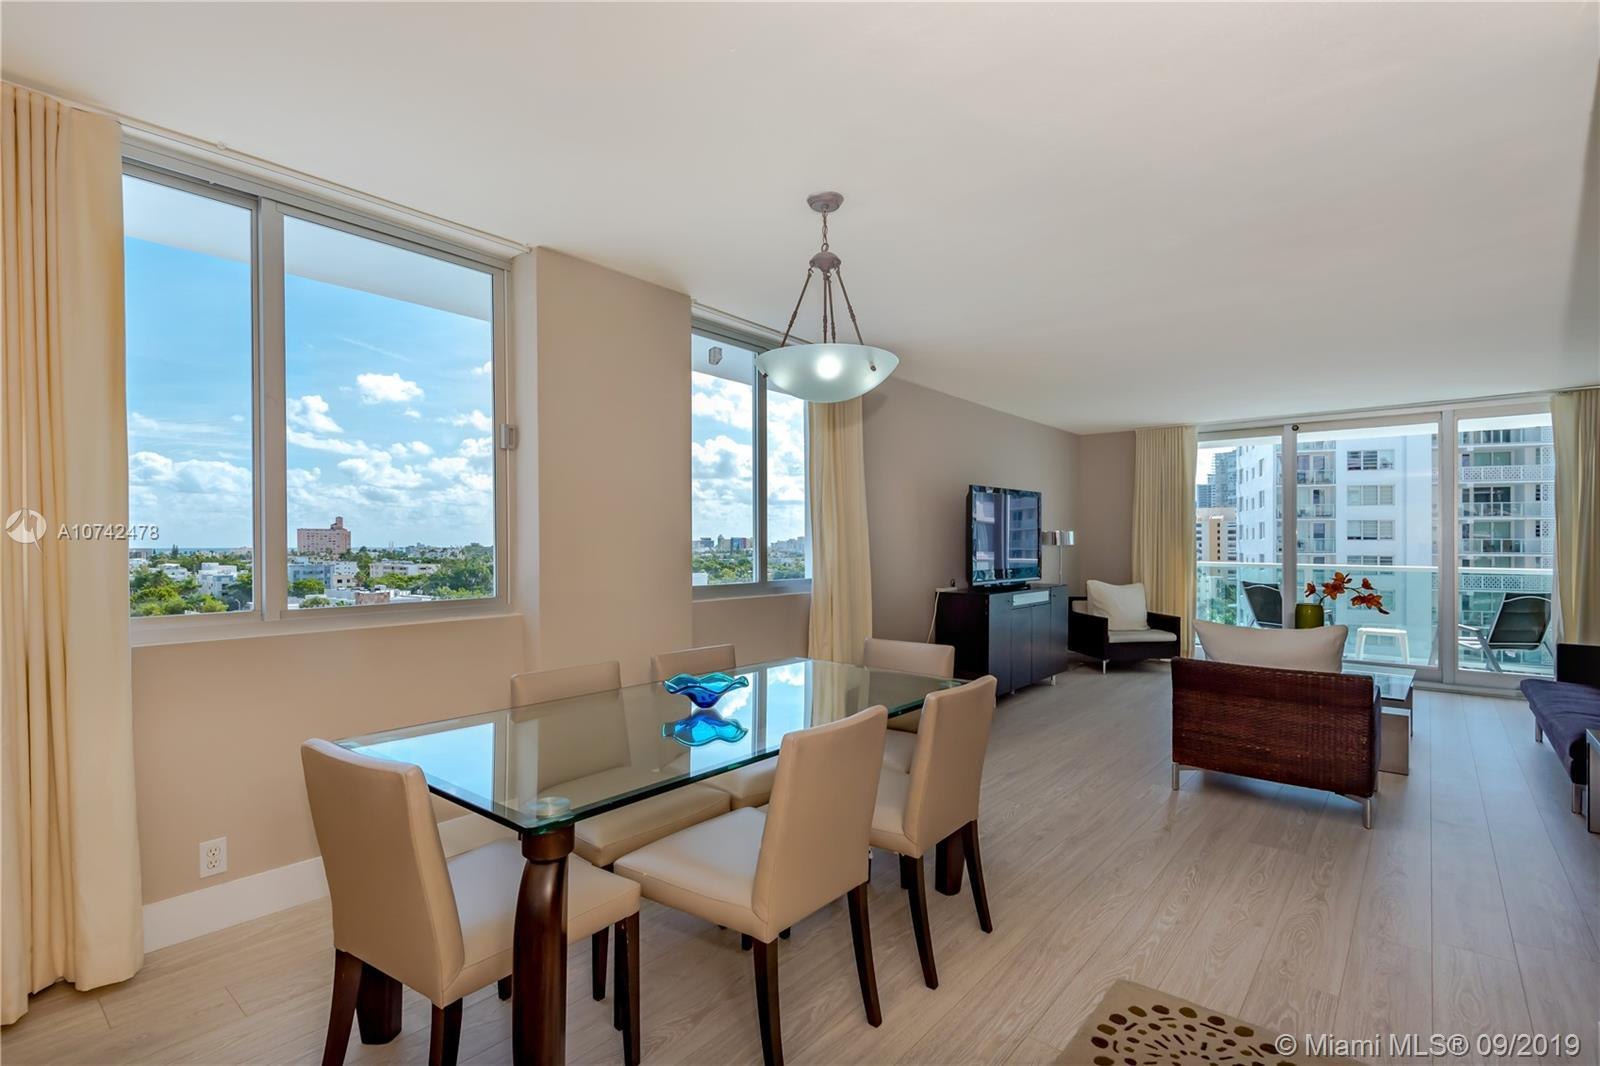 Beautiful 2 bedroom 2 bath apartment with recently installed windows and sliding glass door on trend